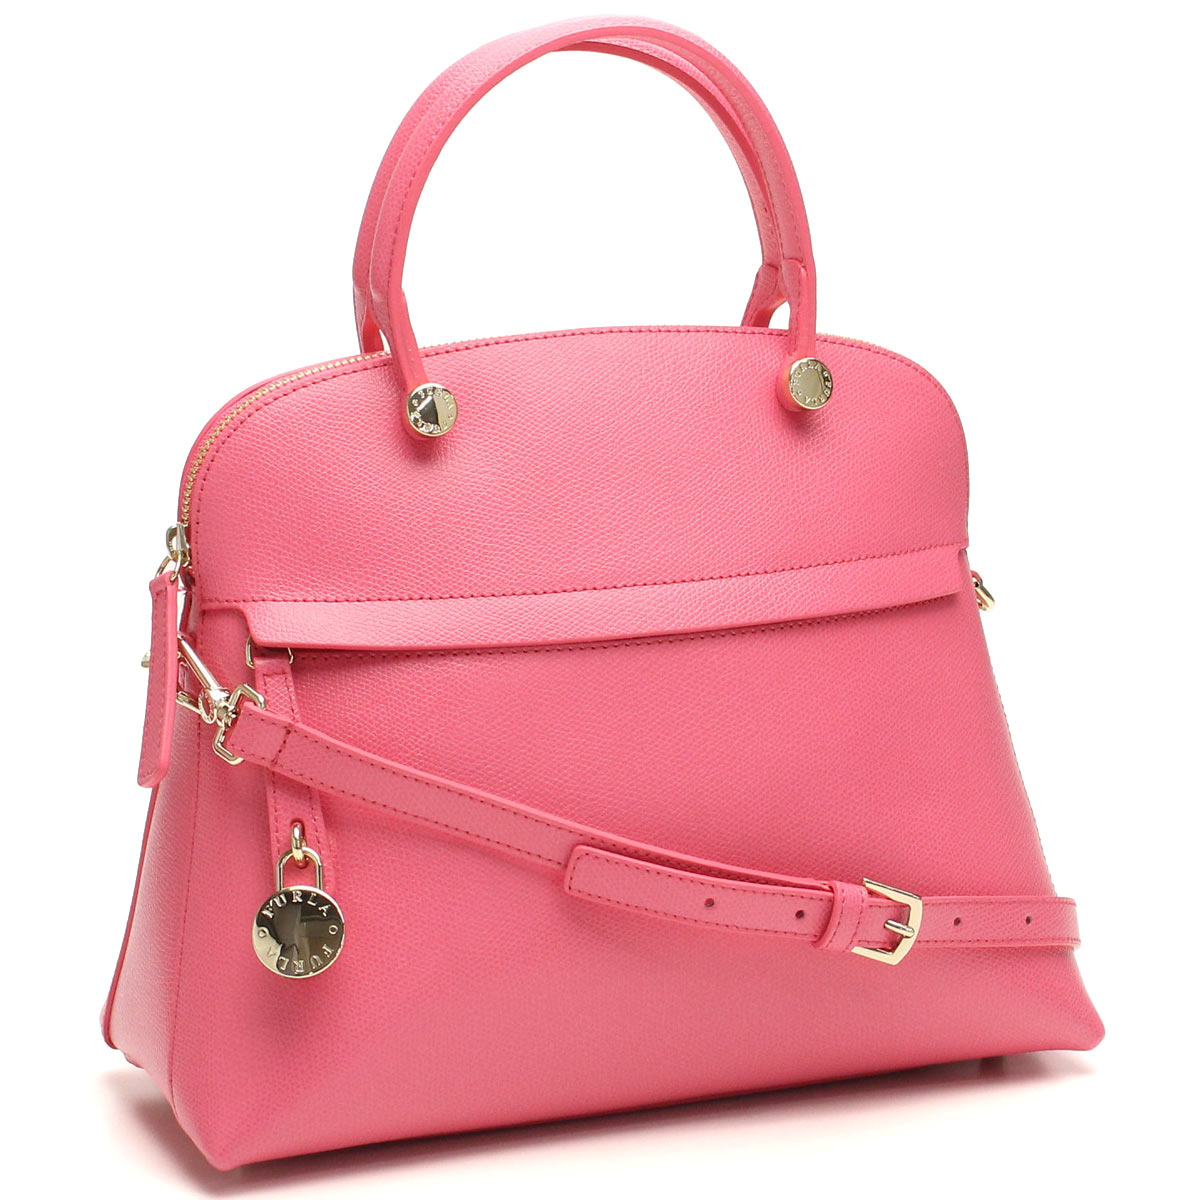 FURLA (FURLA) PIPER handbags BFK9 820859-ARE-ROE ROSE pink